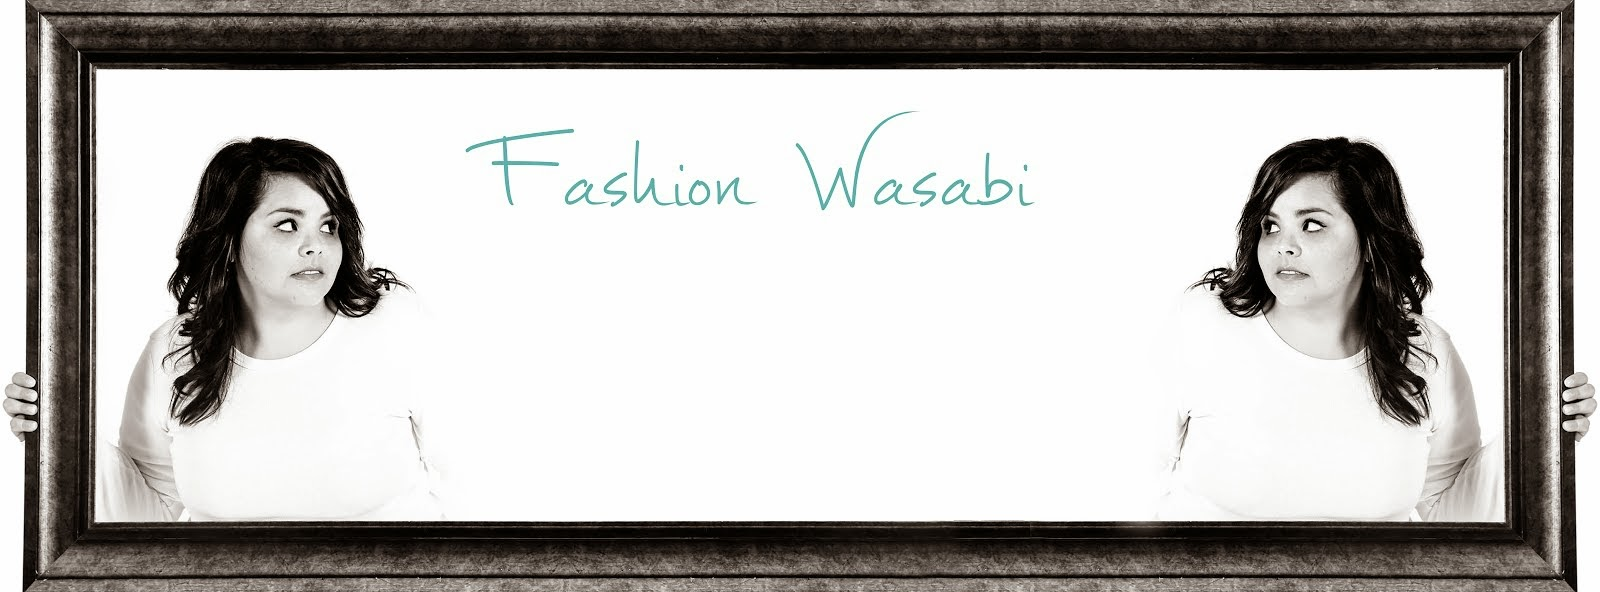 Fashion Wasabi